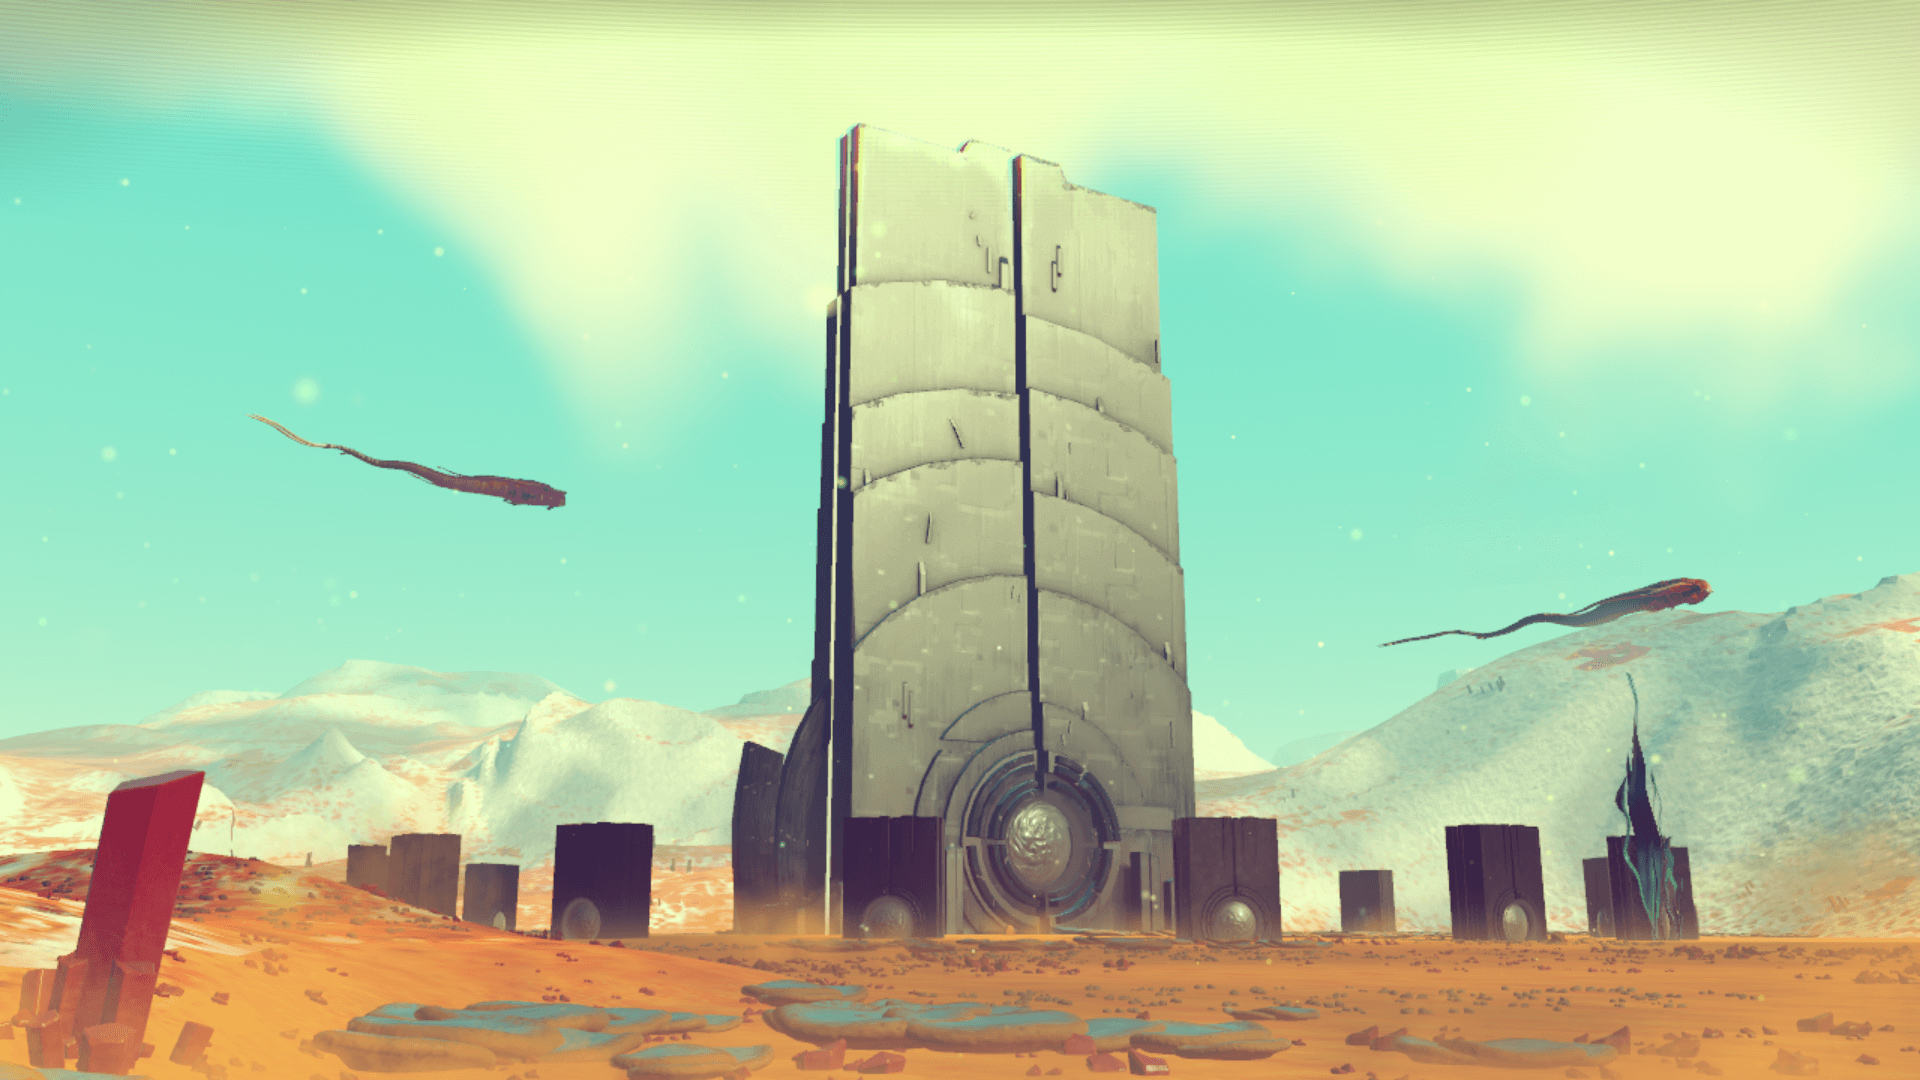 No Man's Sky is back this week with another major update screenshot